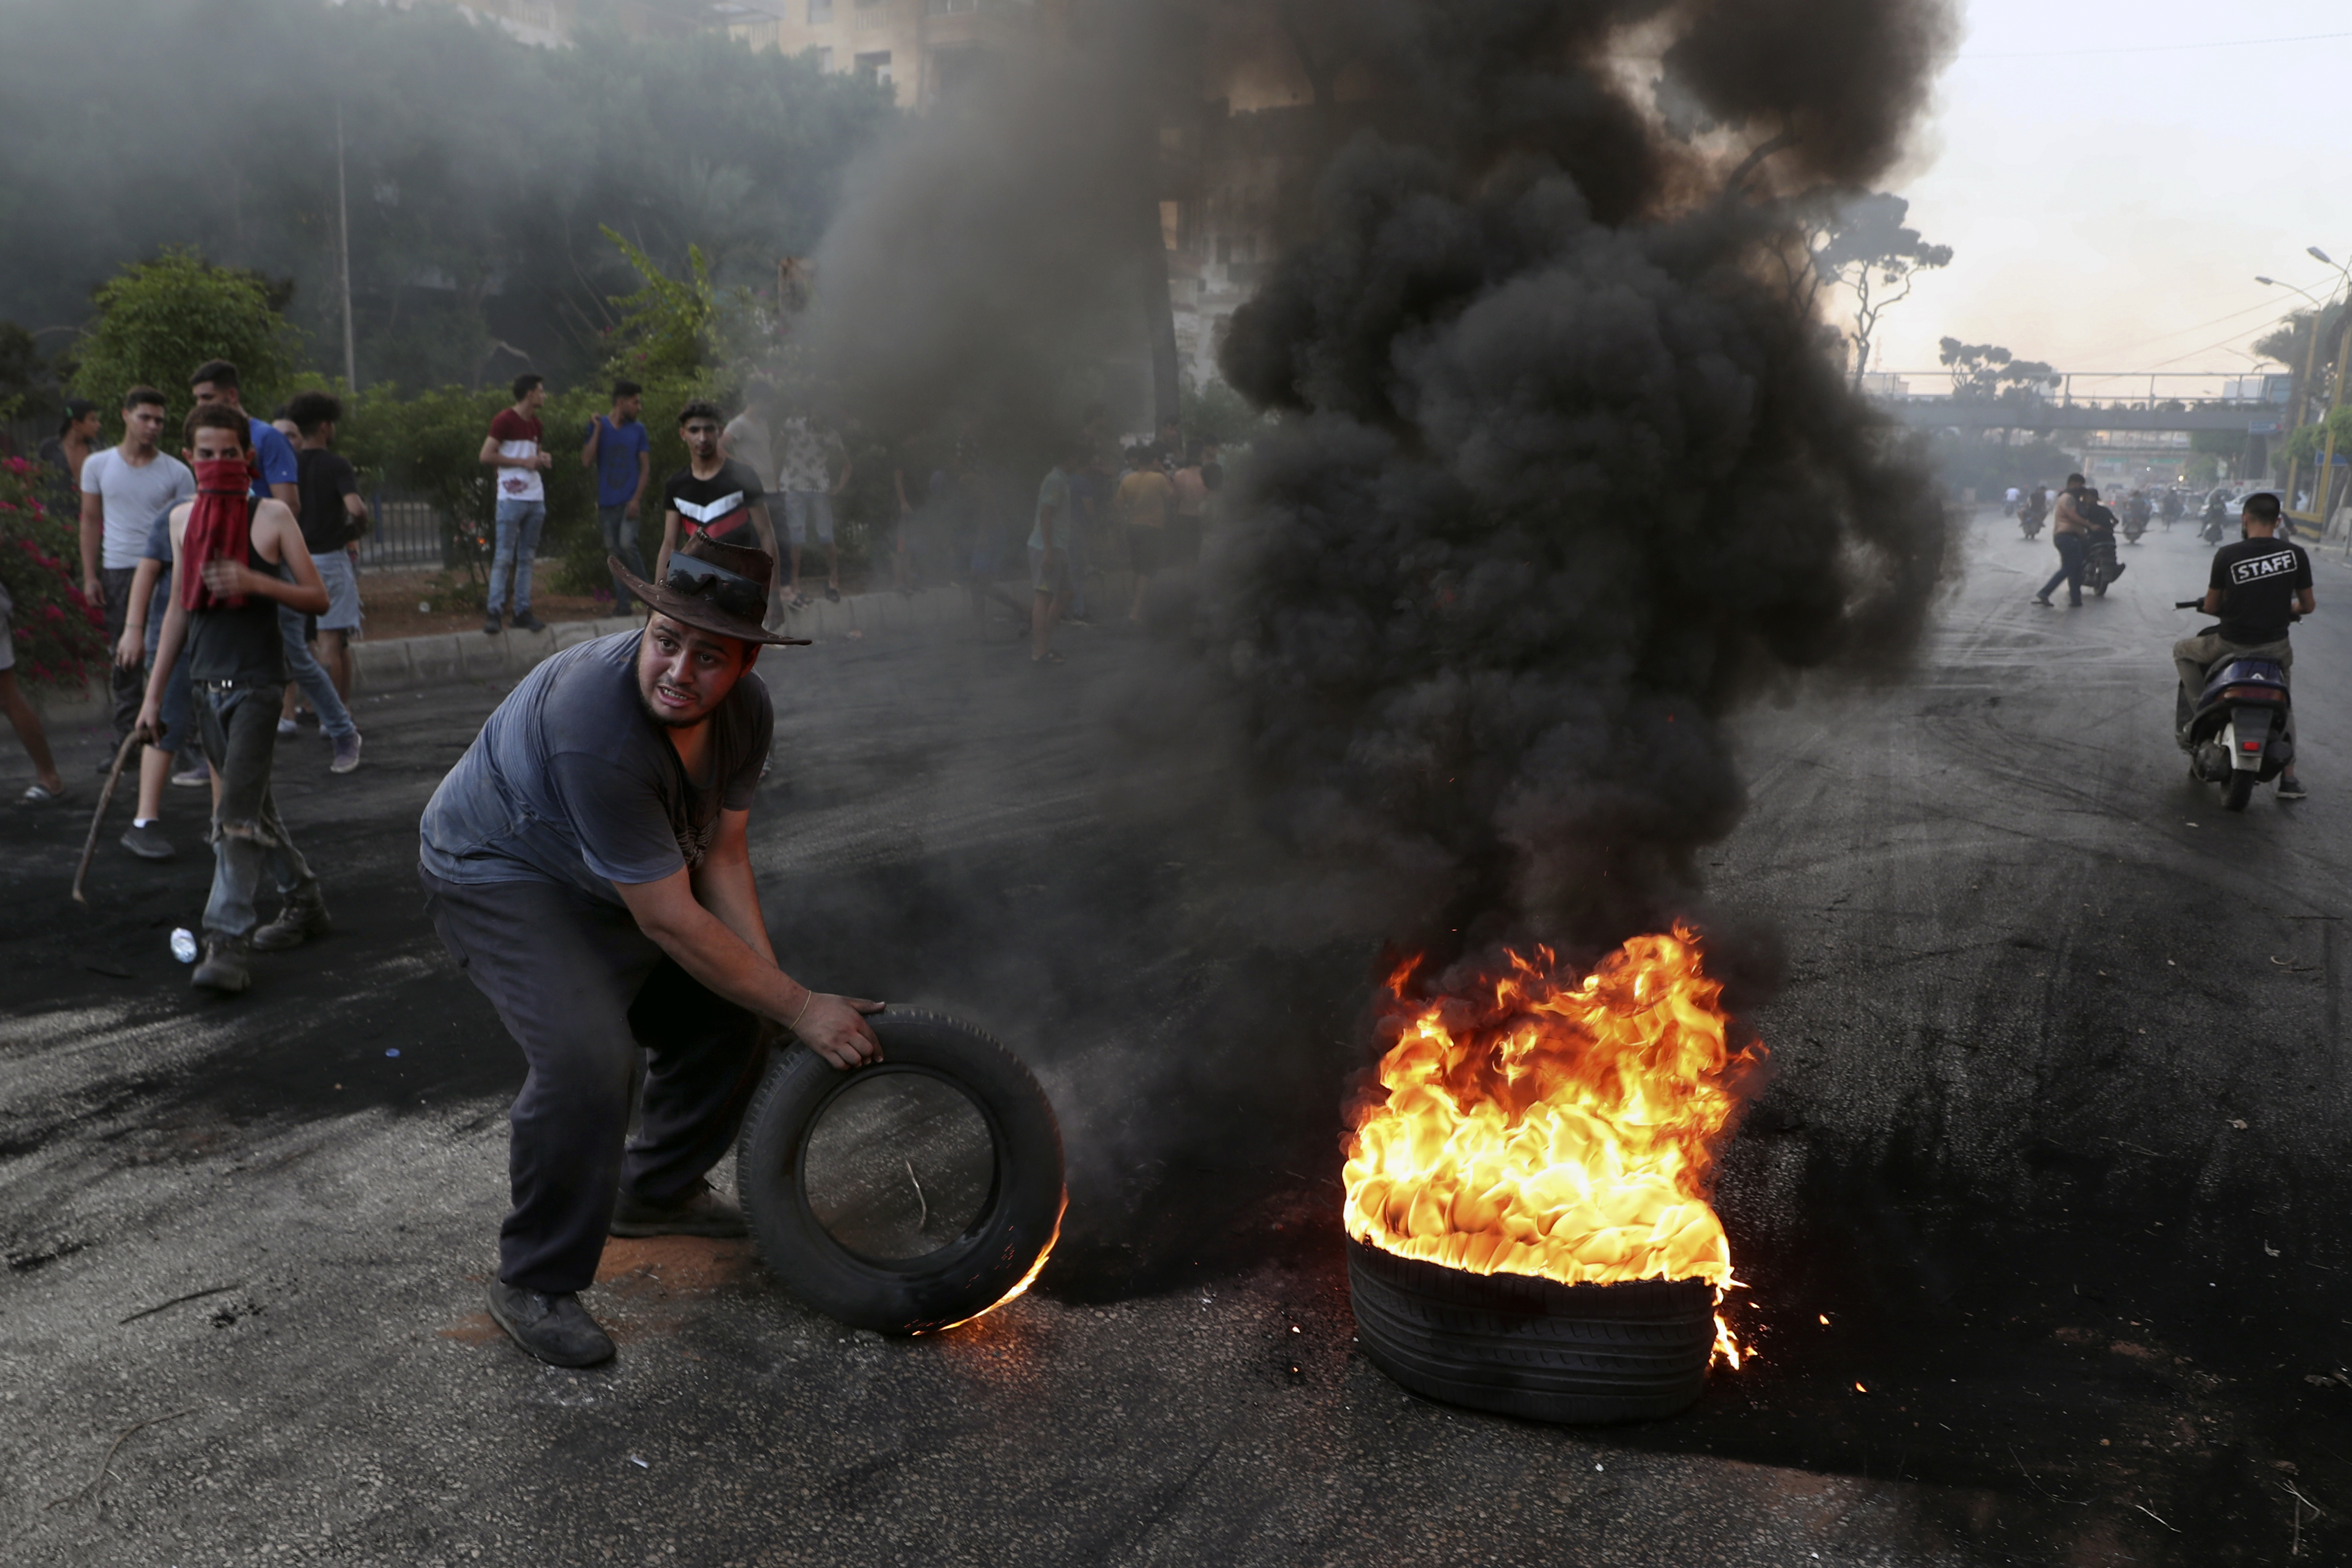 Protesters burn tires to block a road, in Beirut, Lebanon, last week.